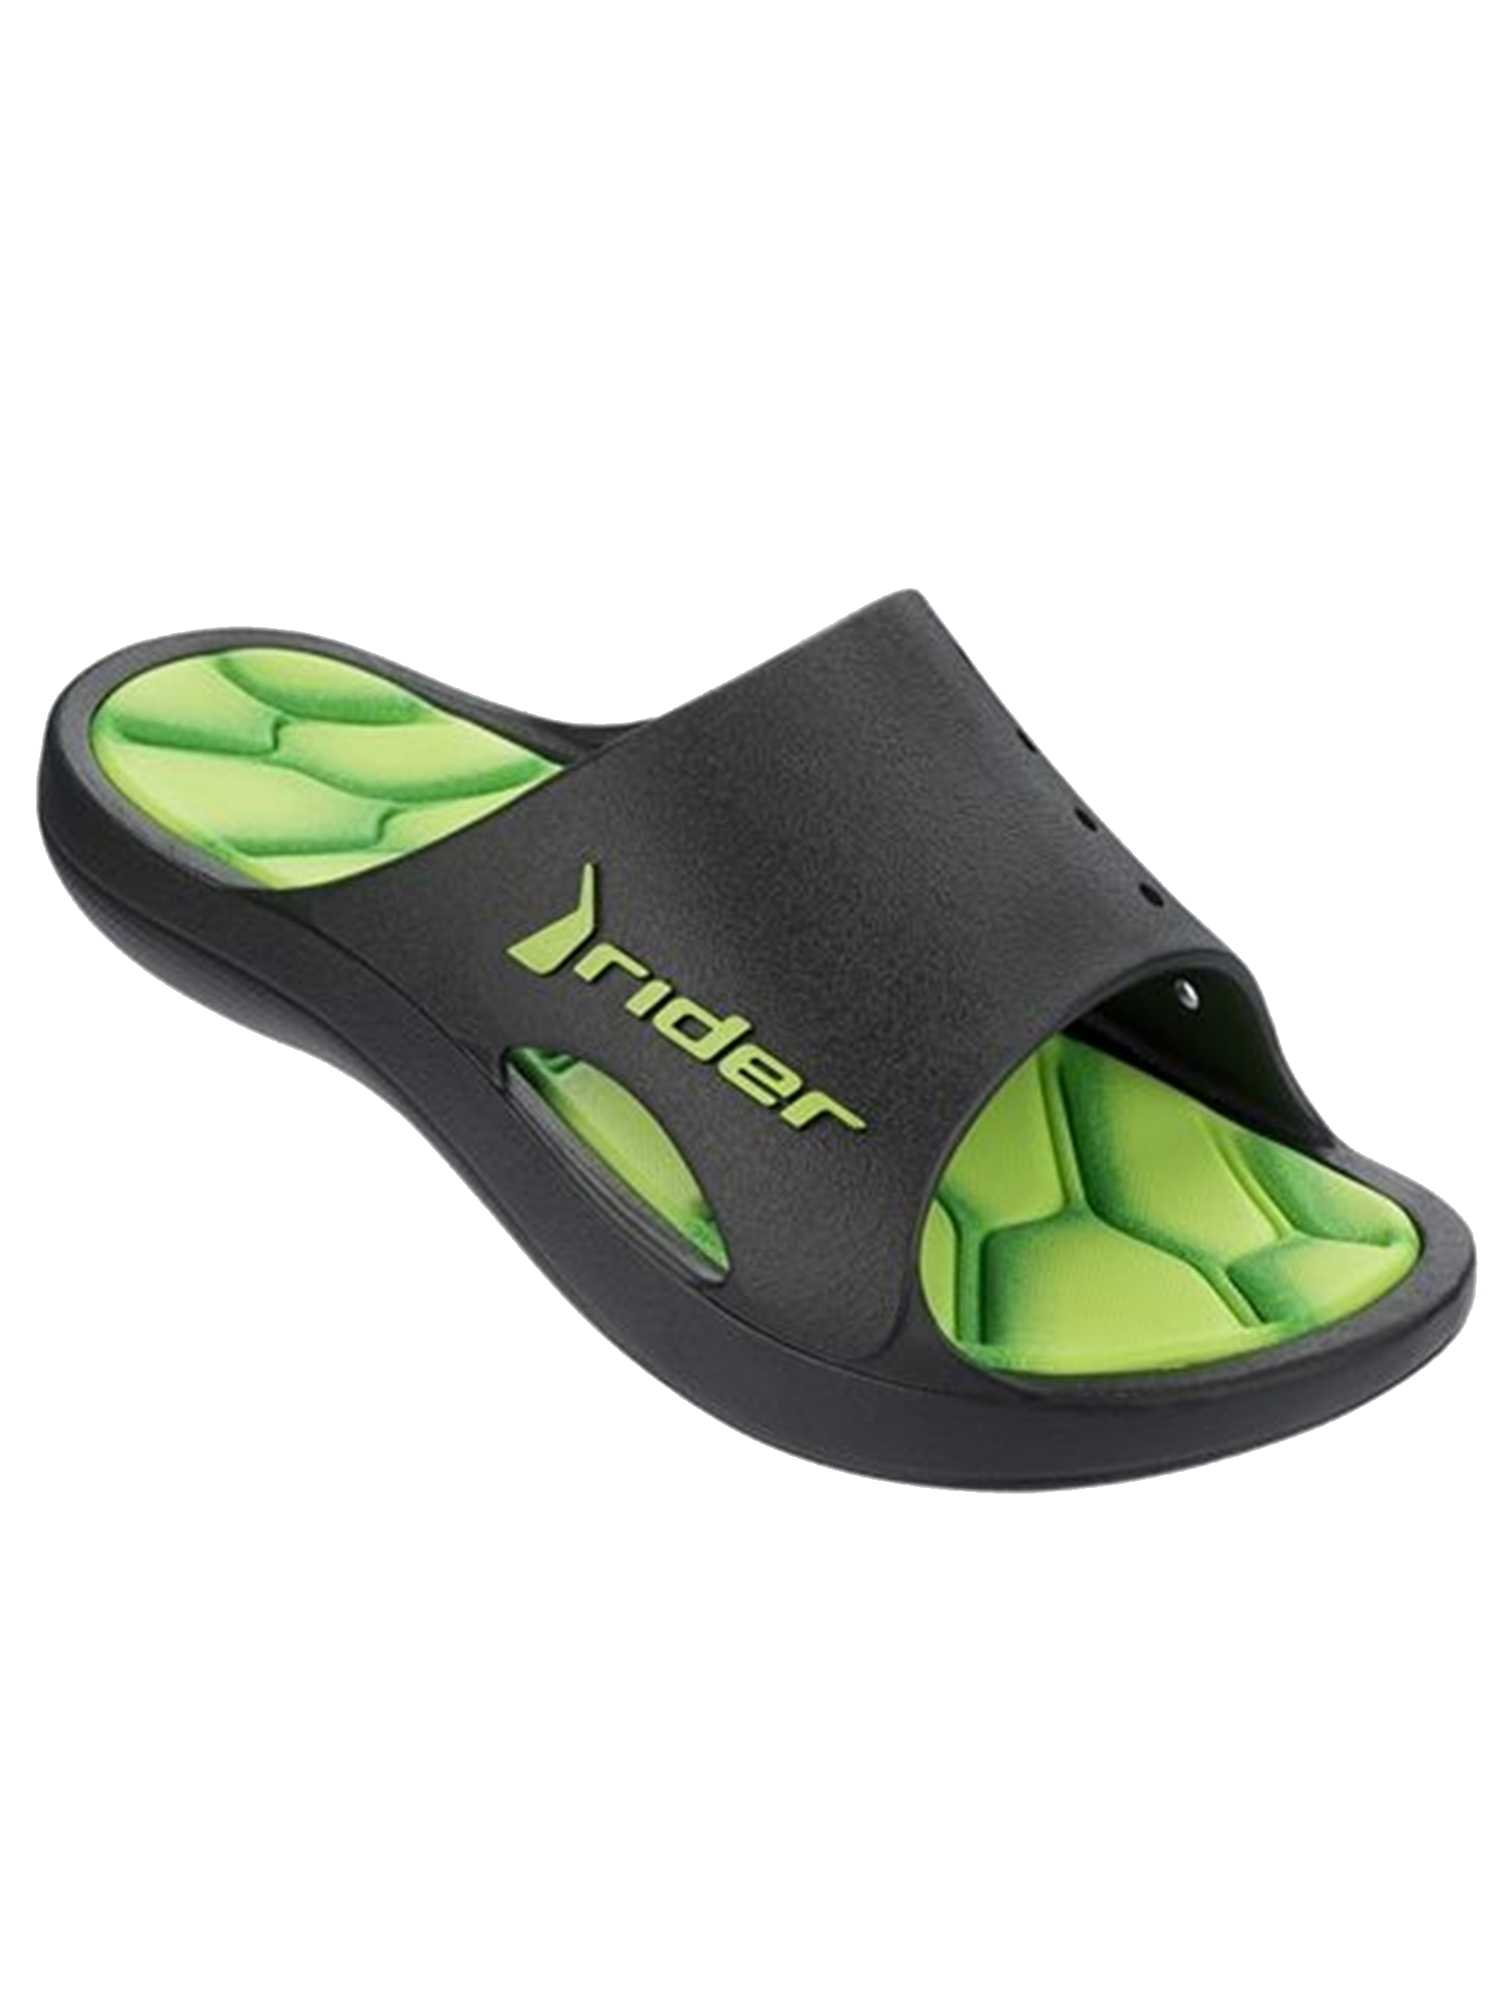 Rider Kids Bay 4 Slide Sandal (Green;Kids Size 1)